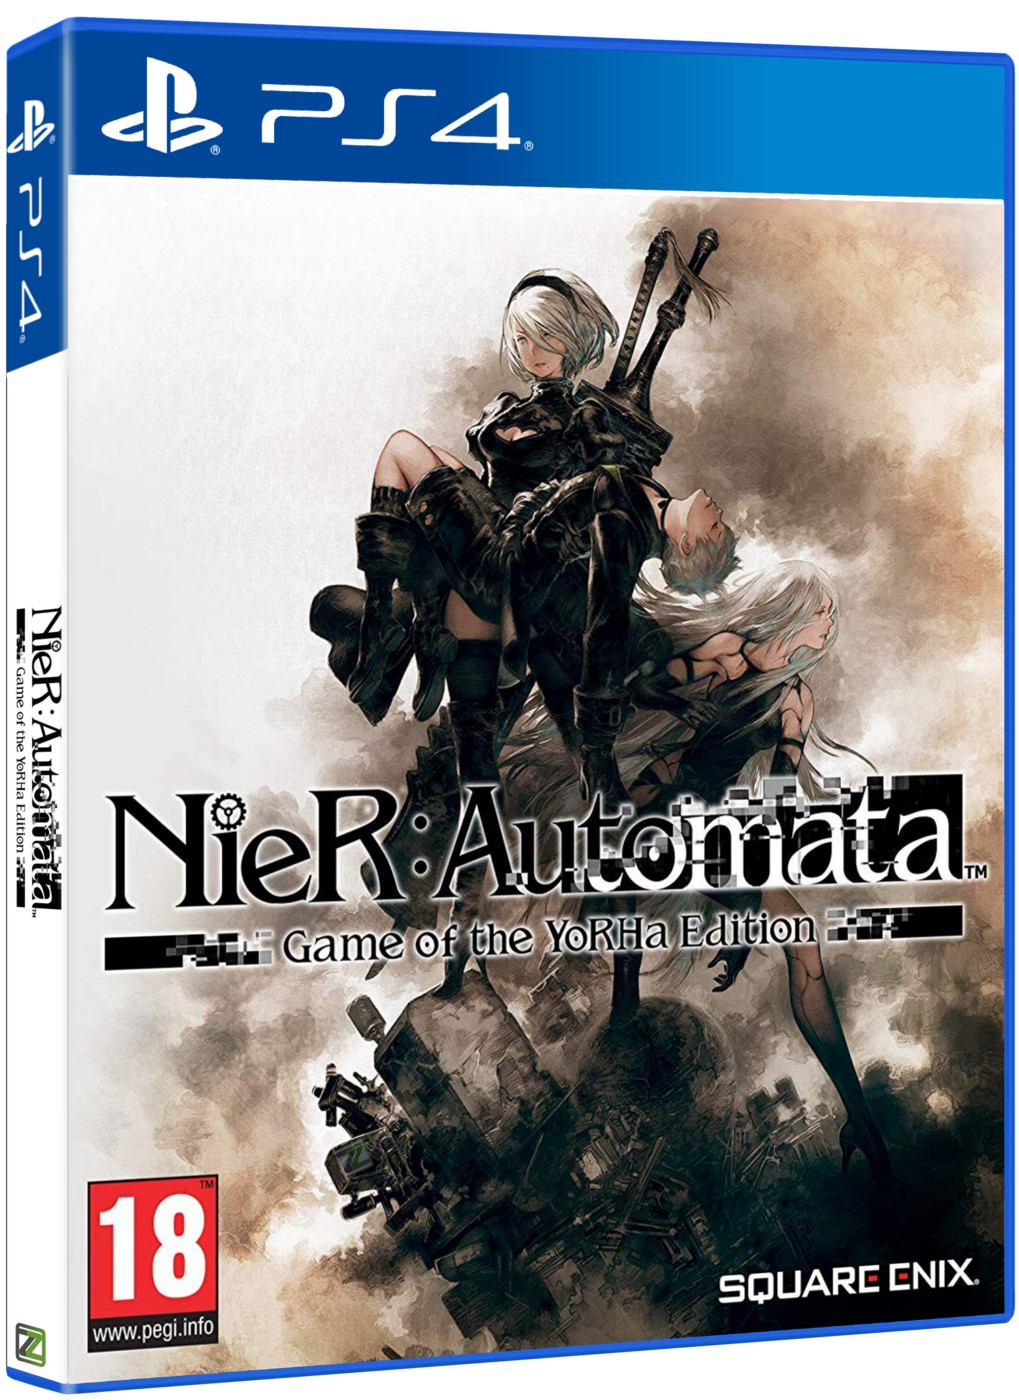 NieR: Automata Game of the Yorha Edition - PS4